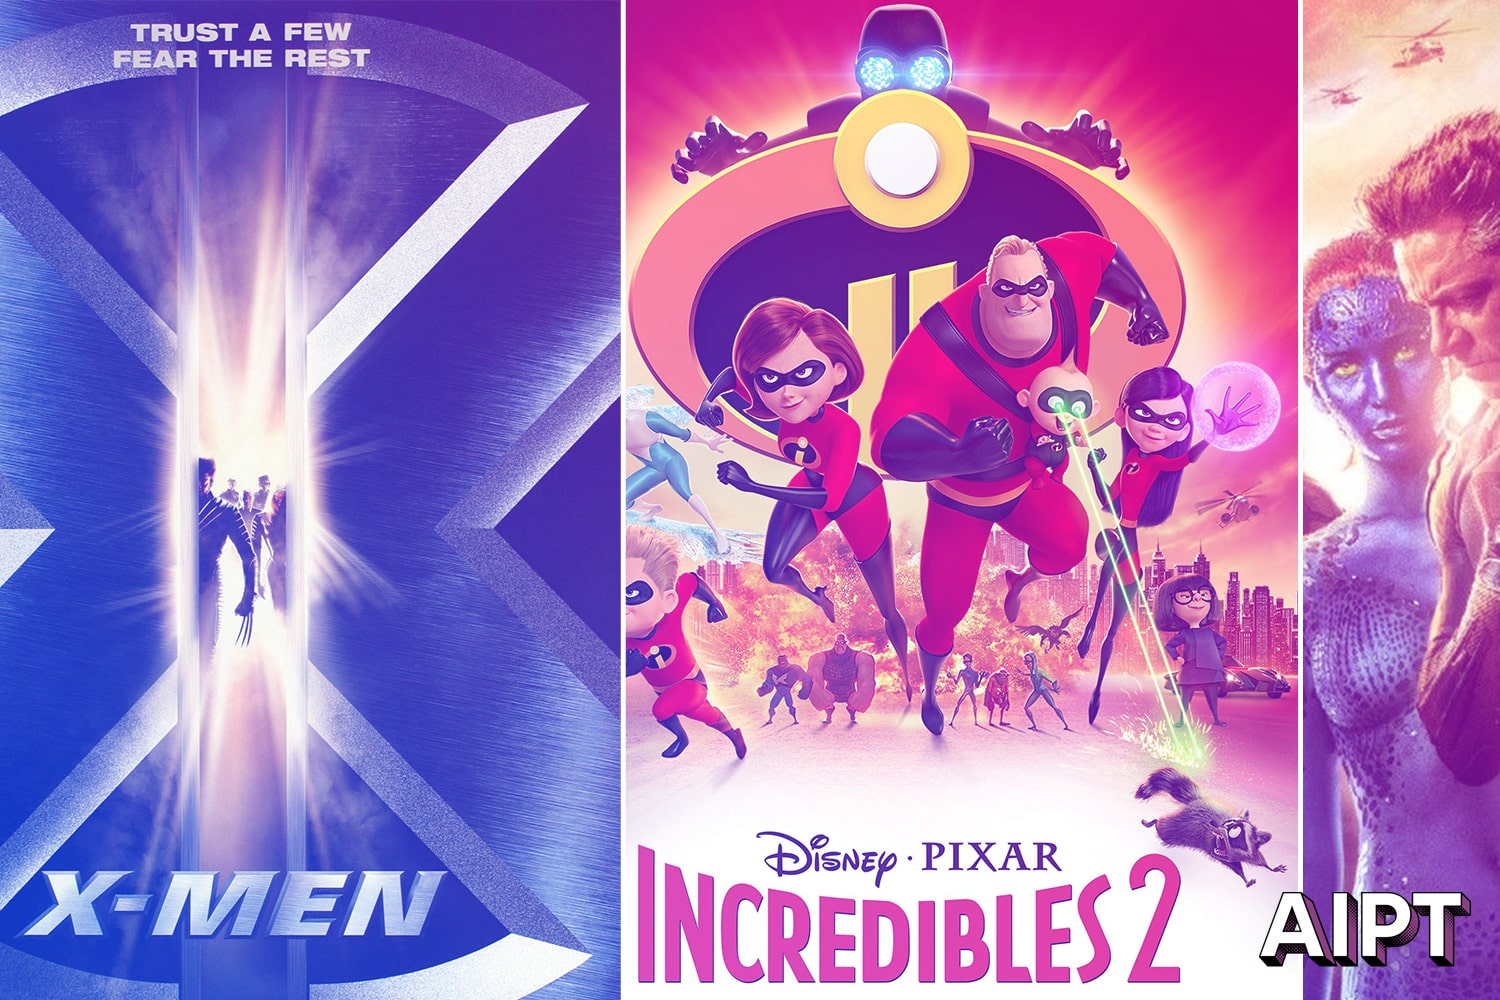 Disney+ hosting 'Summer Movie Nights' with 'X-Men', 'Ant-Man,' and more